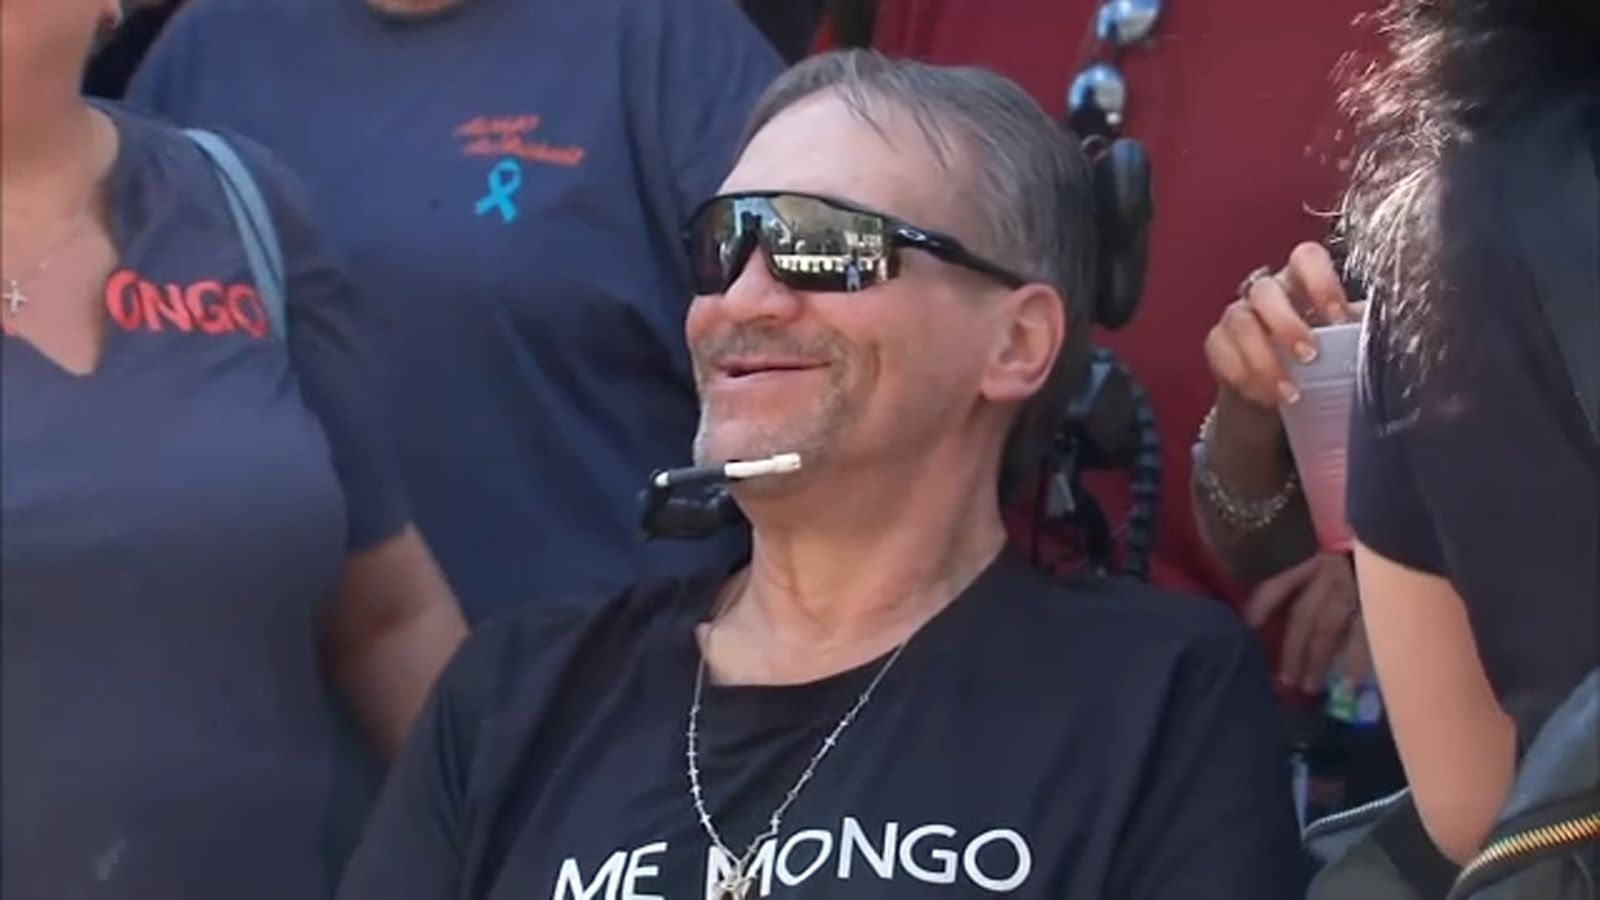 Benefit concert underway in Romeoville for Steve 'Mongo' McMichael after ASL diagnosis